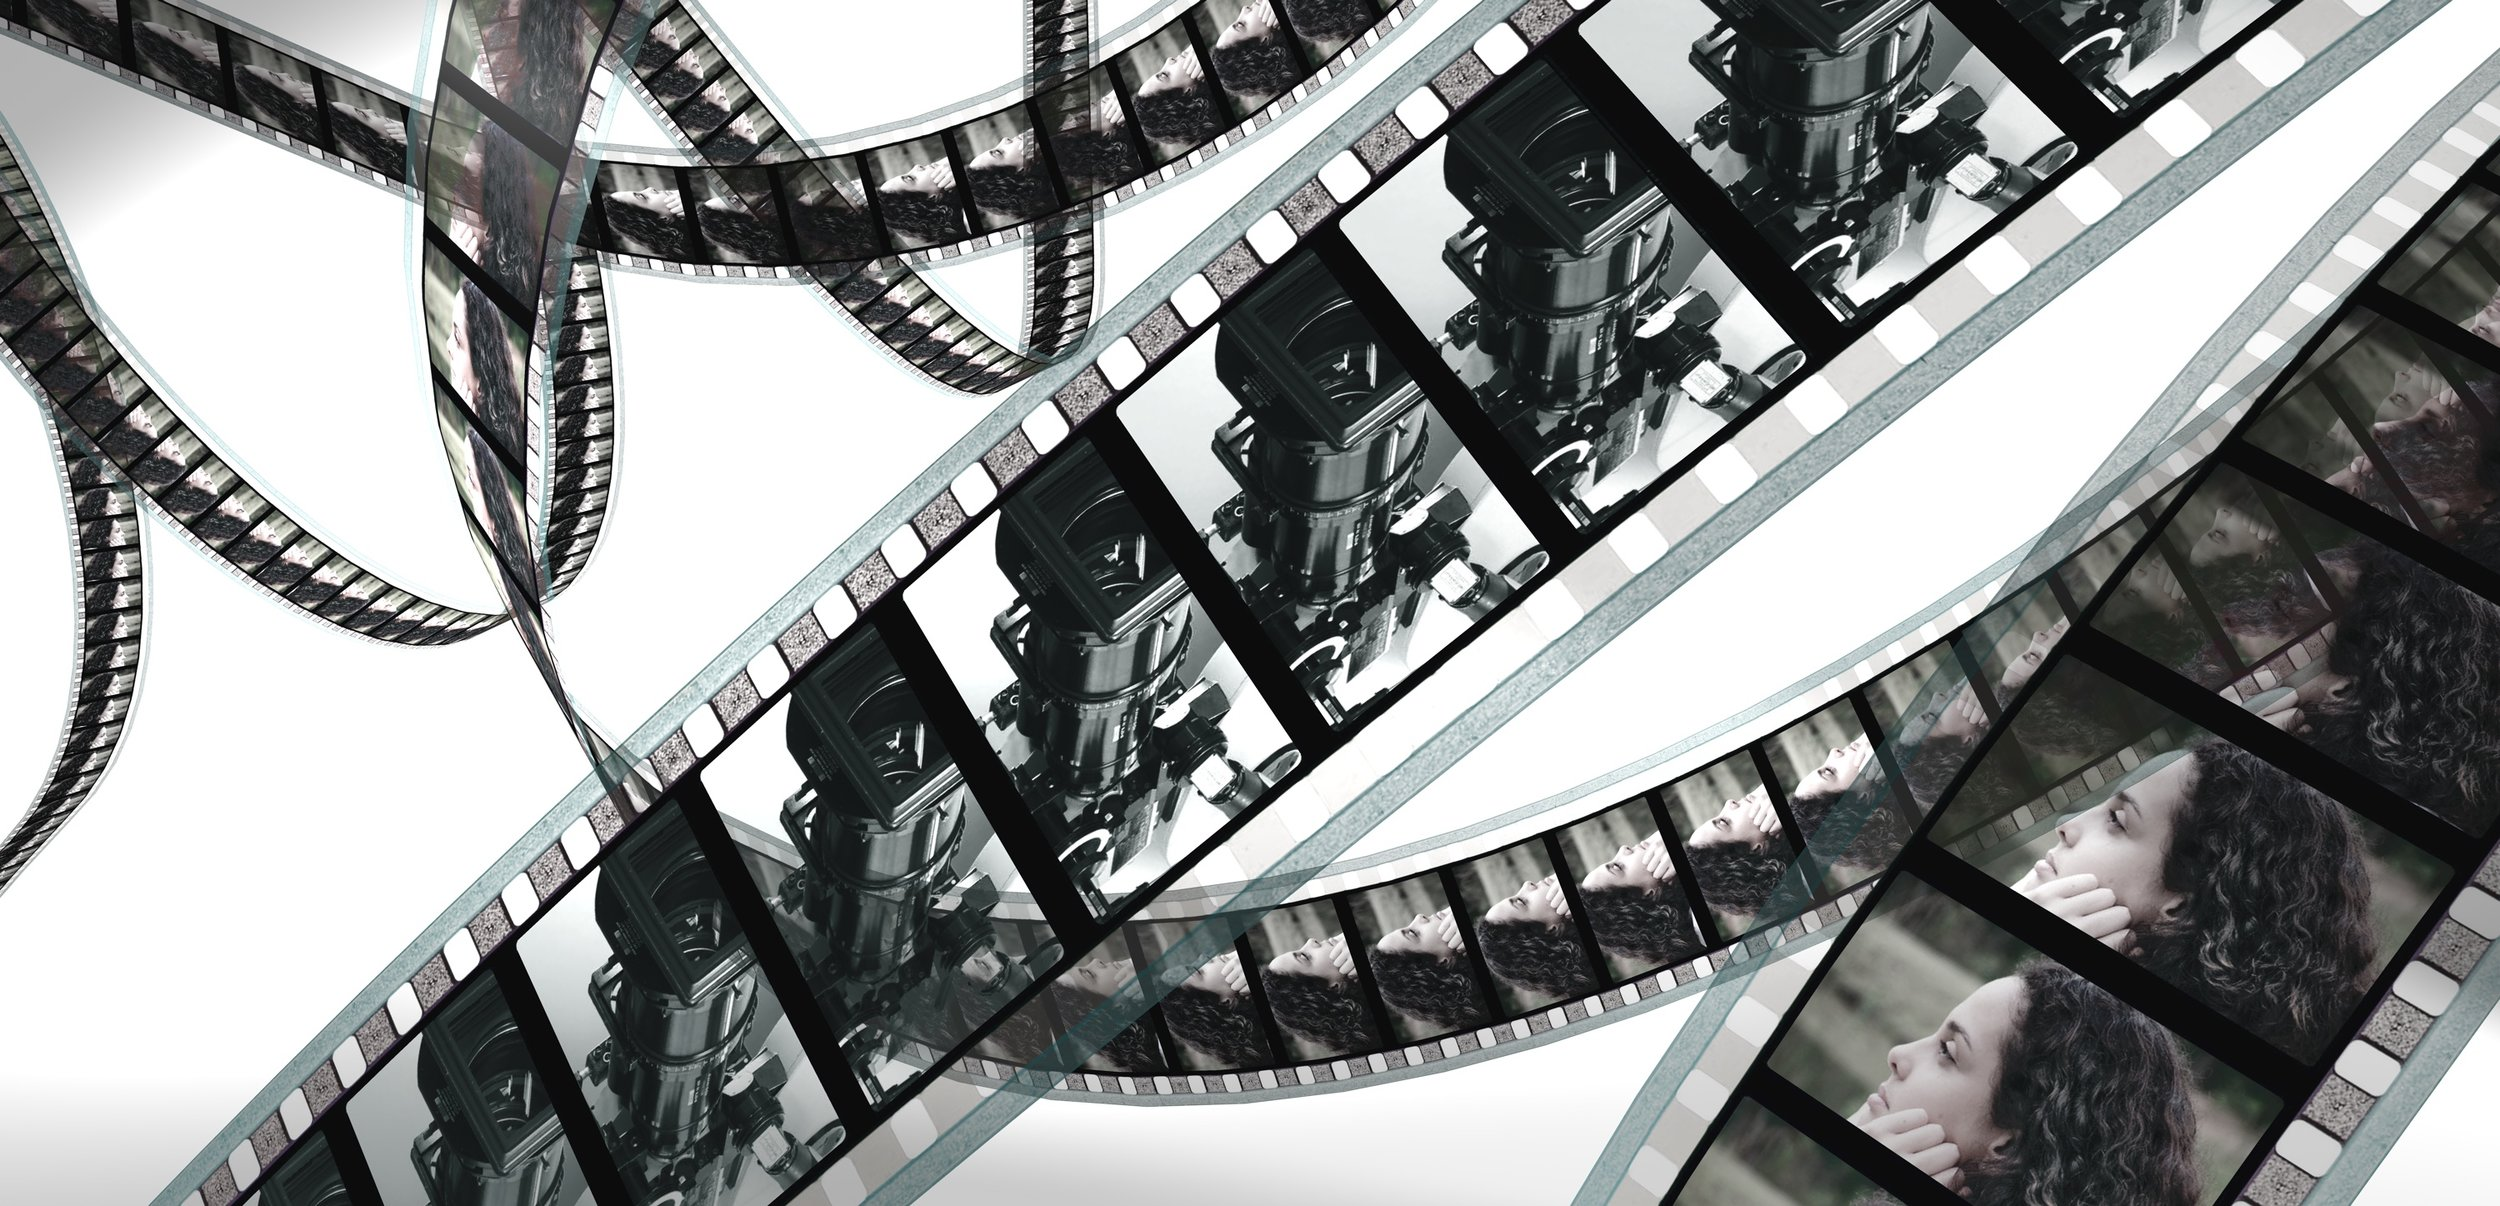 the history of film editing We will examine the historical role of editing, from the earliest silent film through the digital revolution that has transformed moviemaking today as part of the summer institute, ftv-122d will include hands-on editing projects and labs.